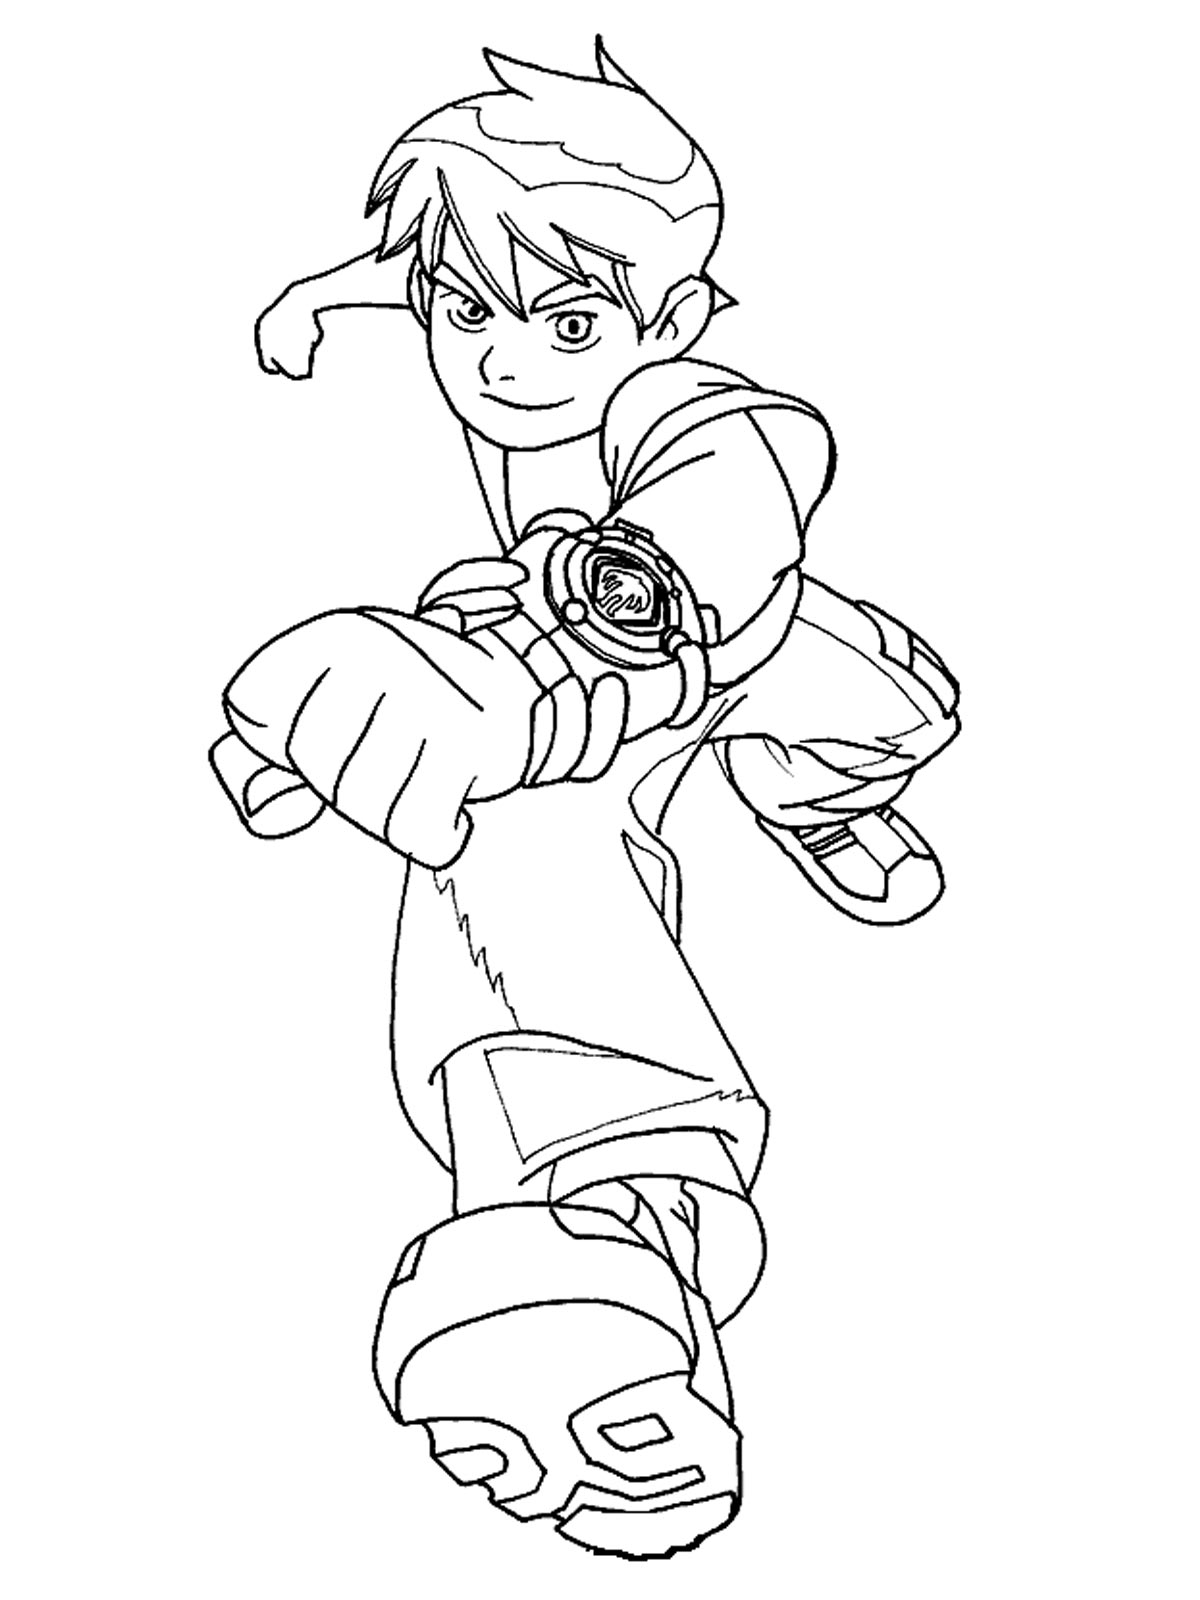 Ben10 Coloring Pages From Landon Free Printables